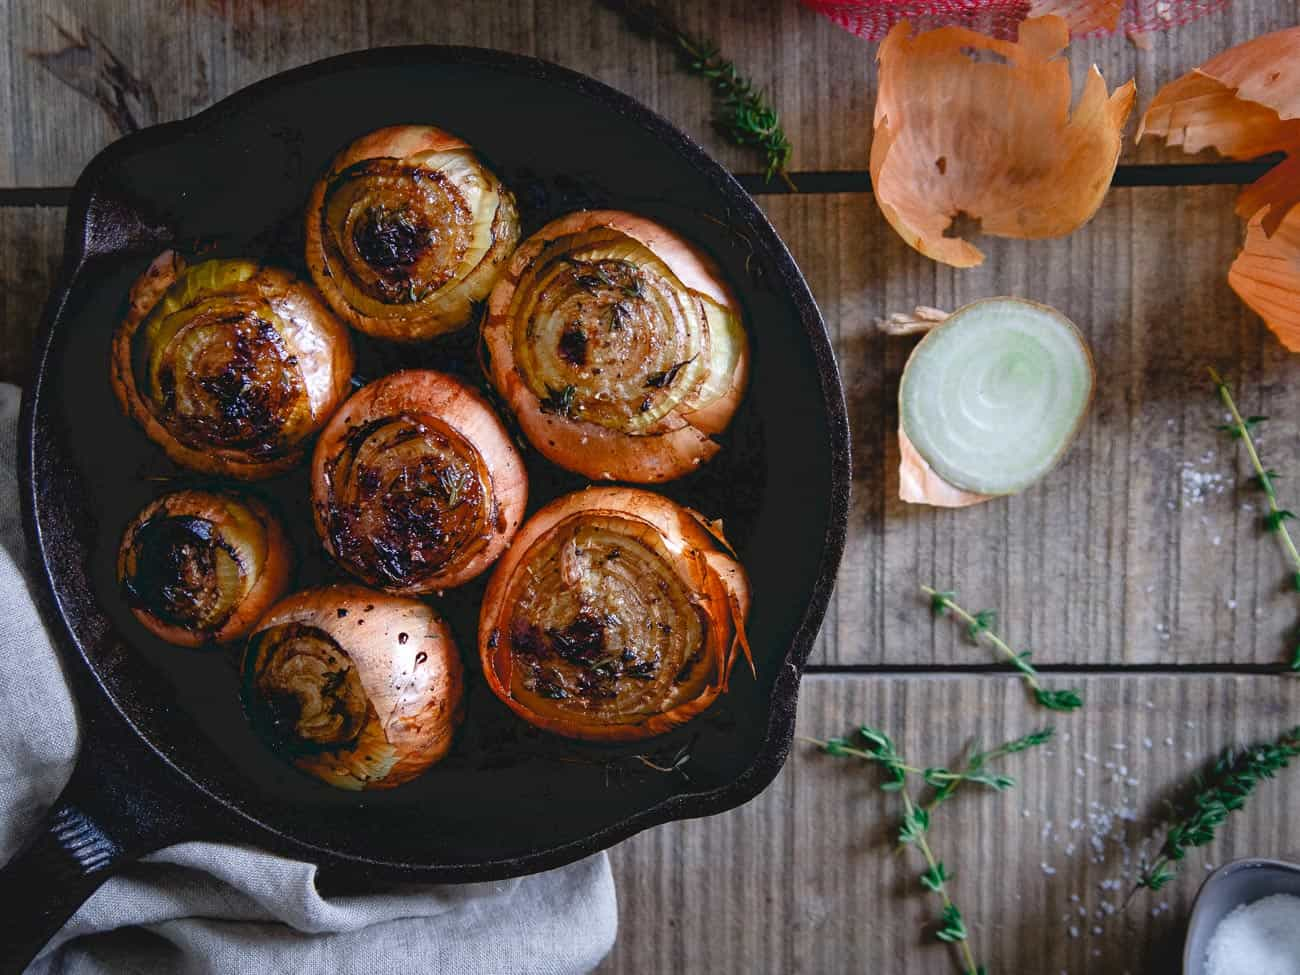 Whole roasted onions make a great side dish, especially perfect for a nice steak dinner!